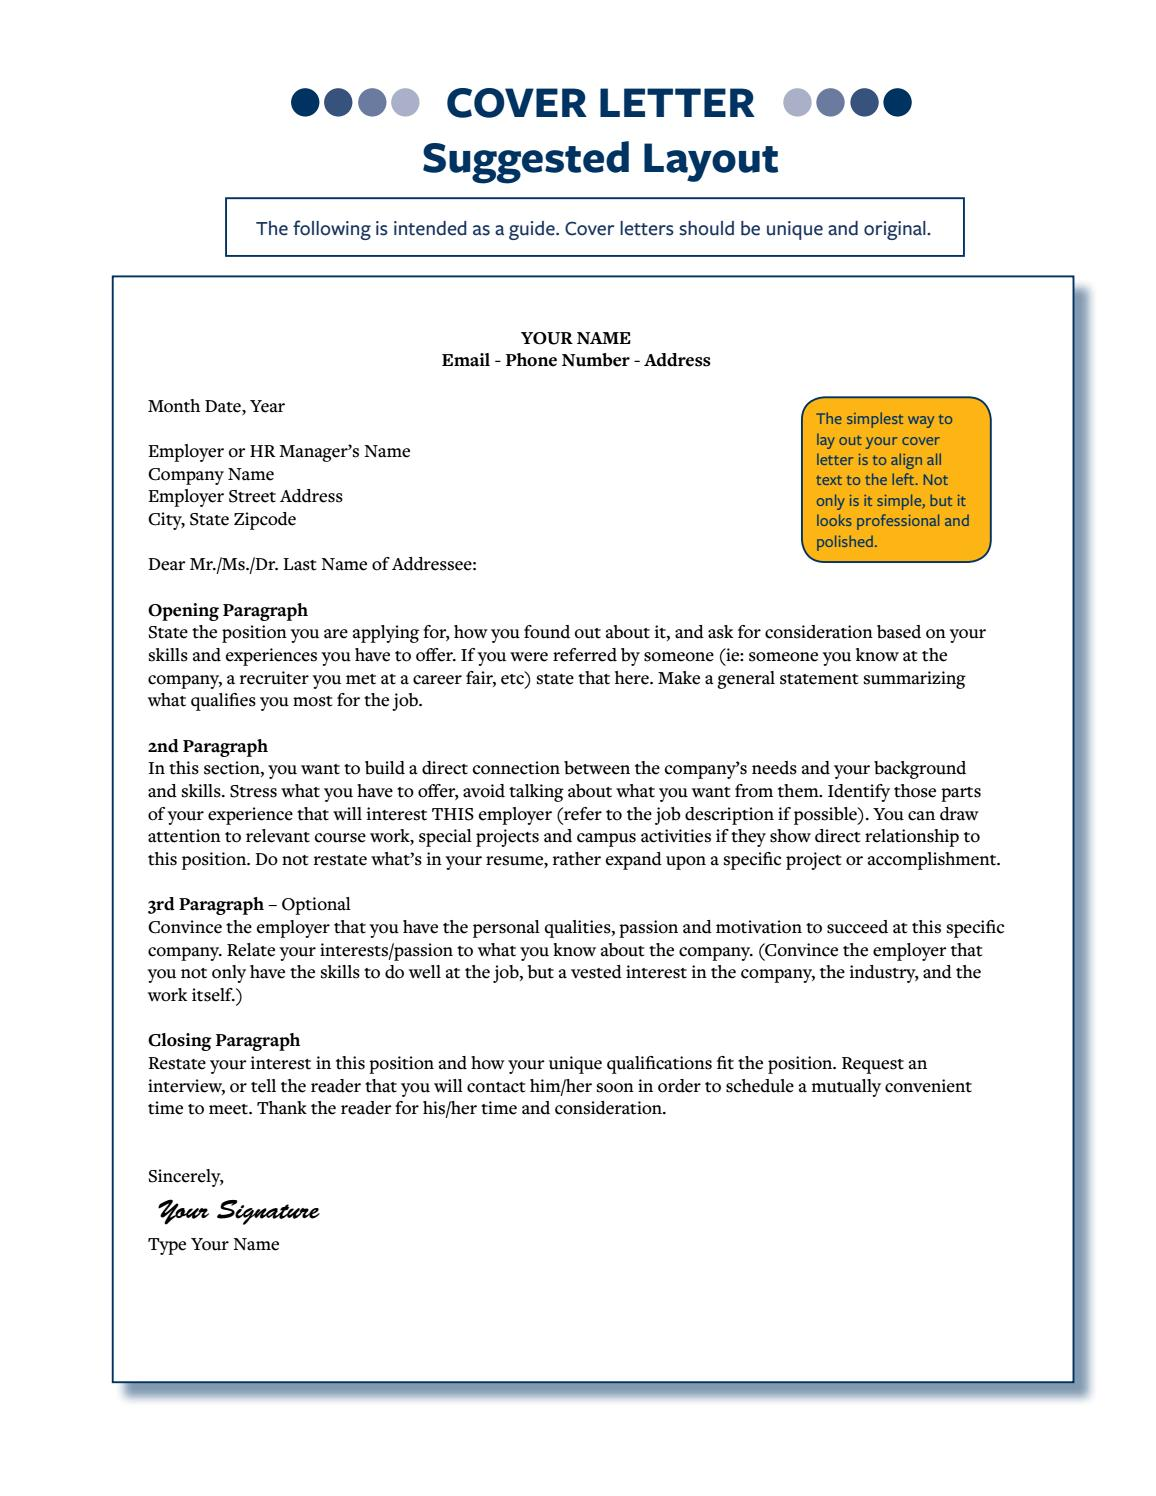 Sample Cover Letters by CalCareerCenter - issuu